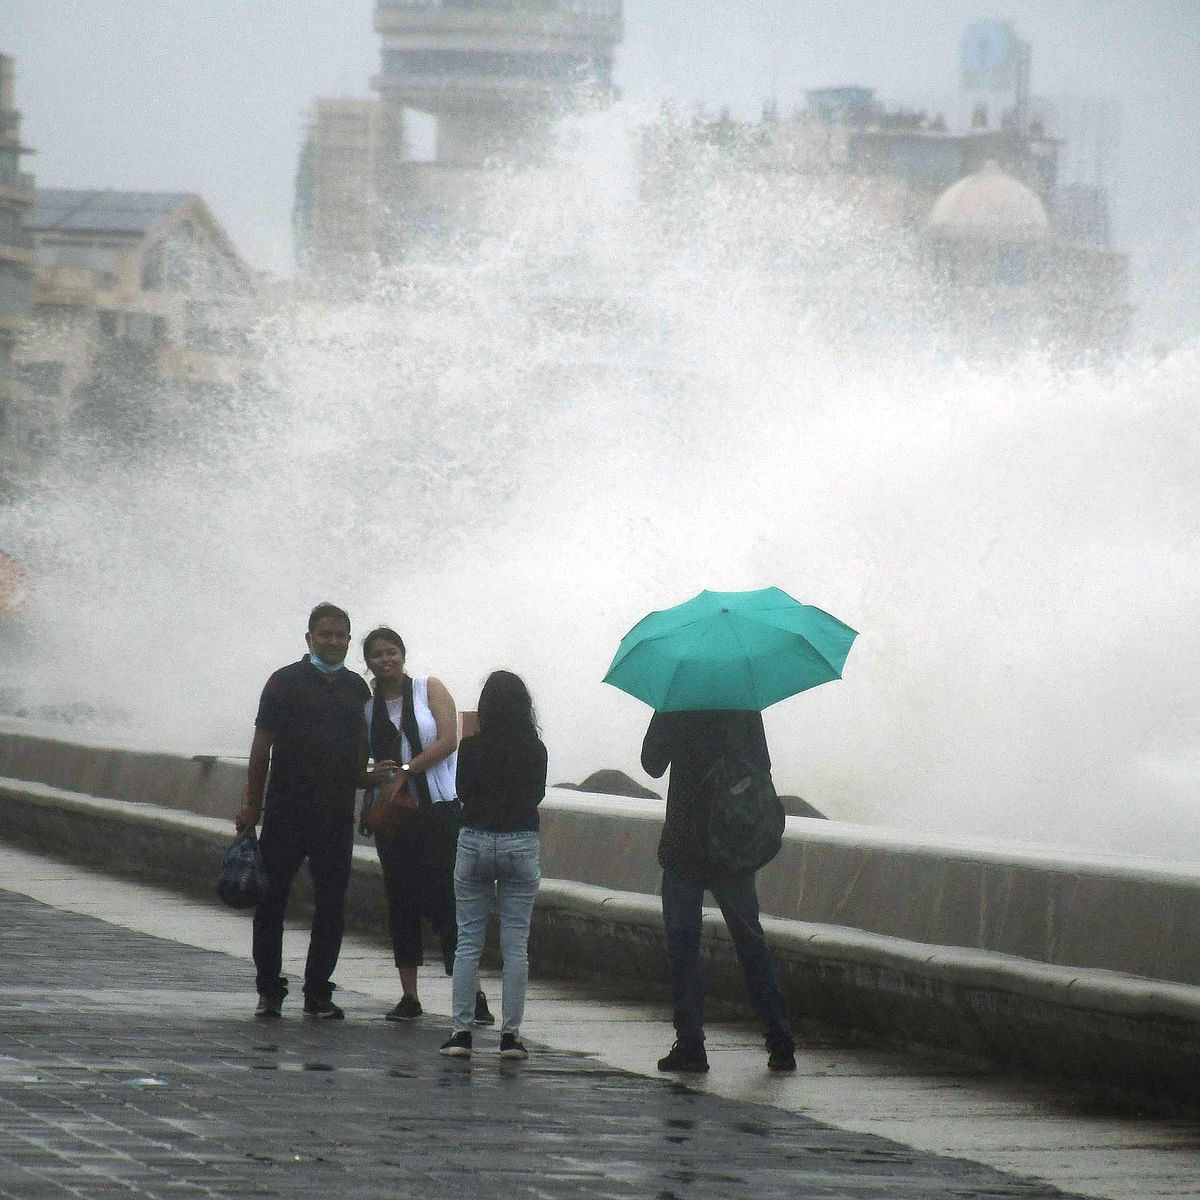 Mumbai weather updates: Heavy rains cause waterlogging in city; IMD predicts very heavy spells at isolated places